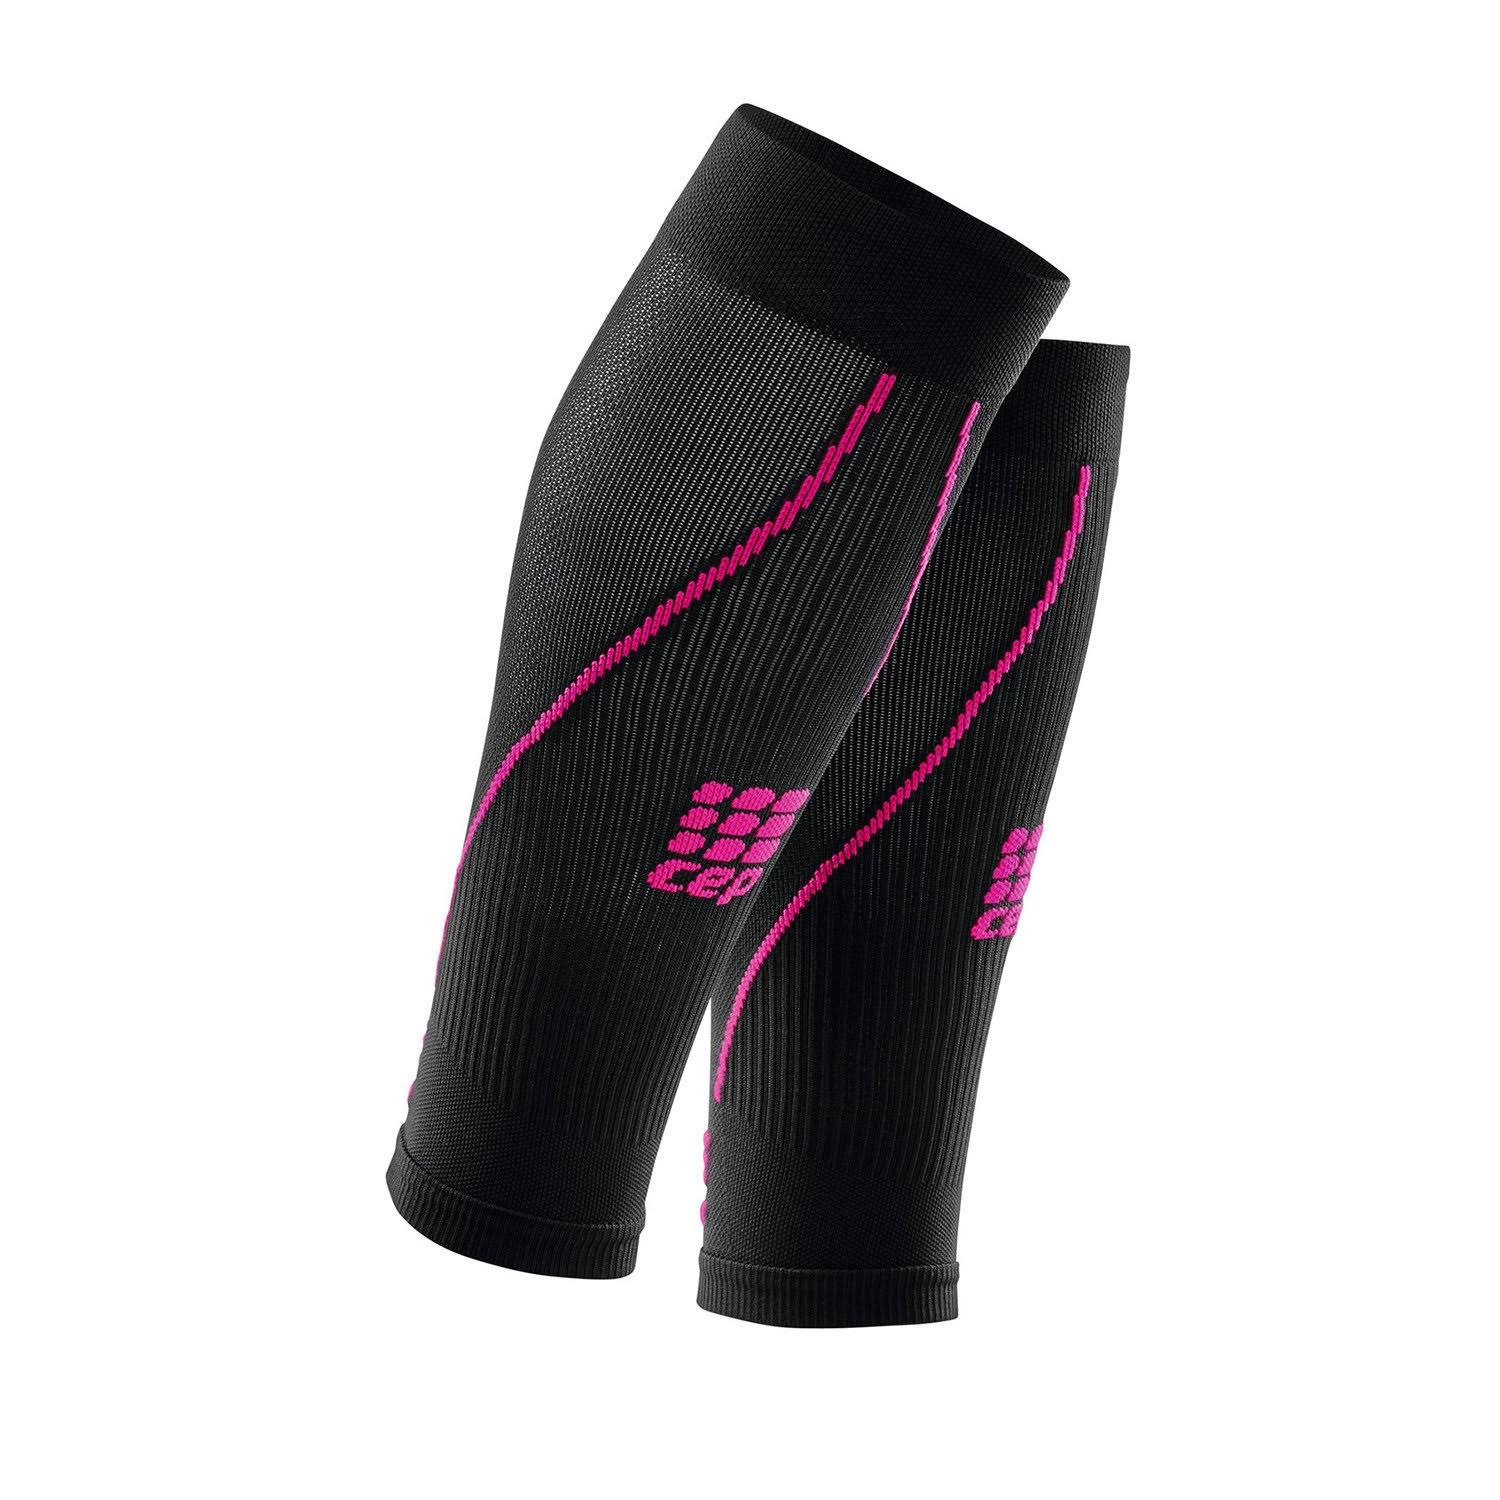 CEP Womens Progressive Calf Sleeves - Black and Pink, Size 2